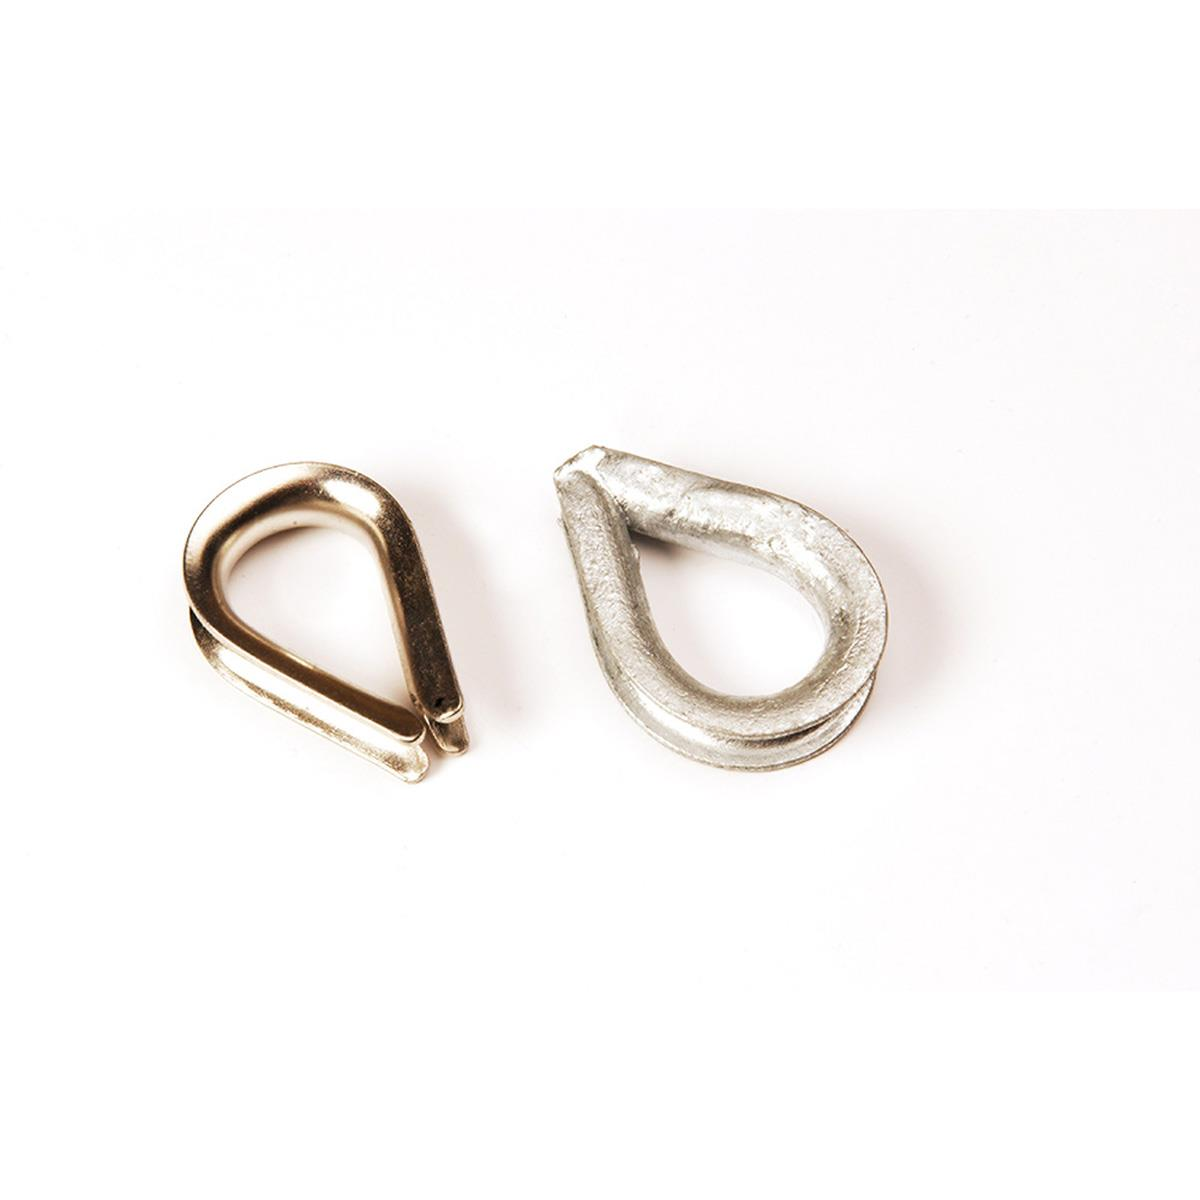 4mm Stainless Steel Rope Thimble